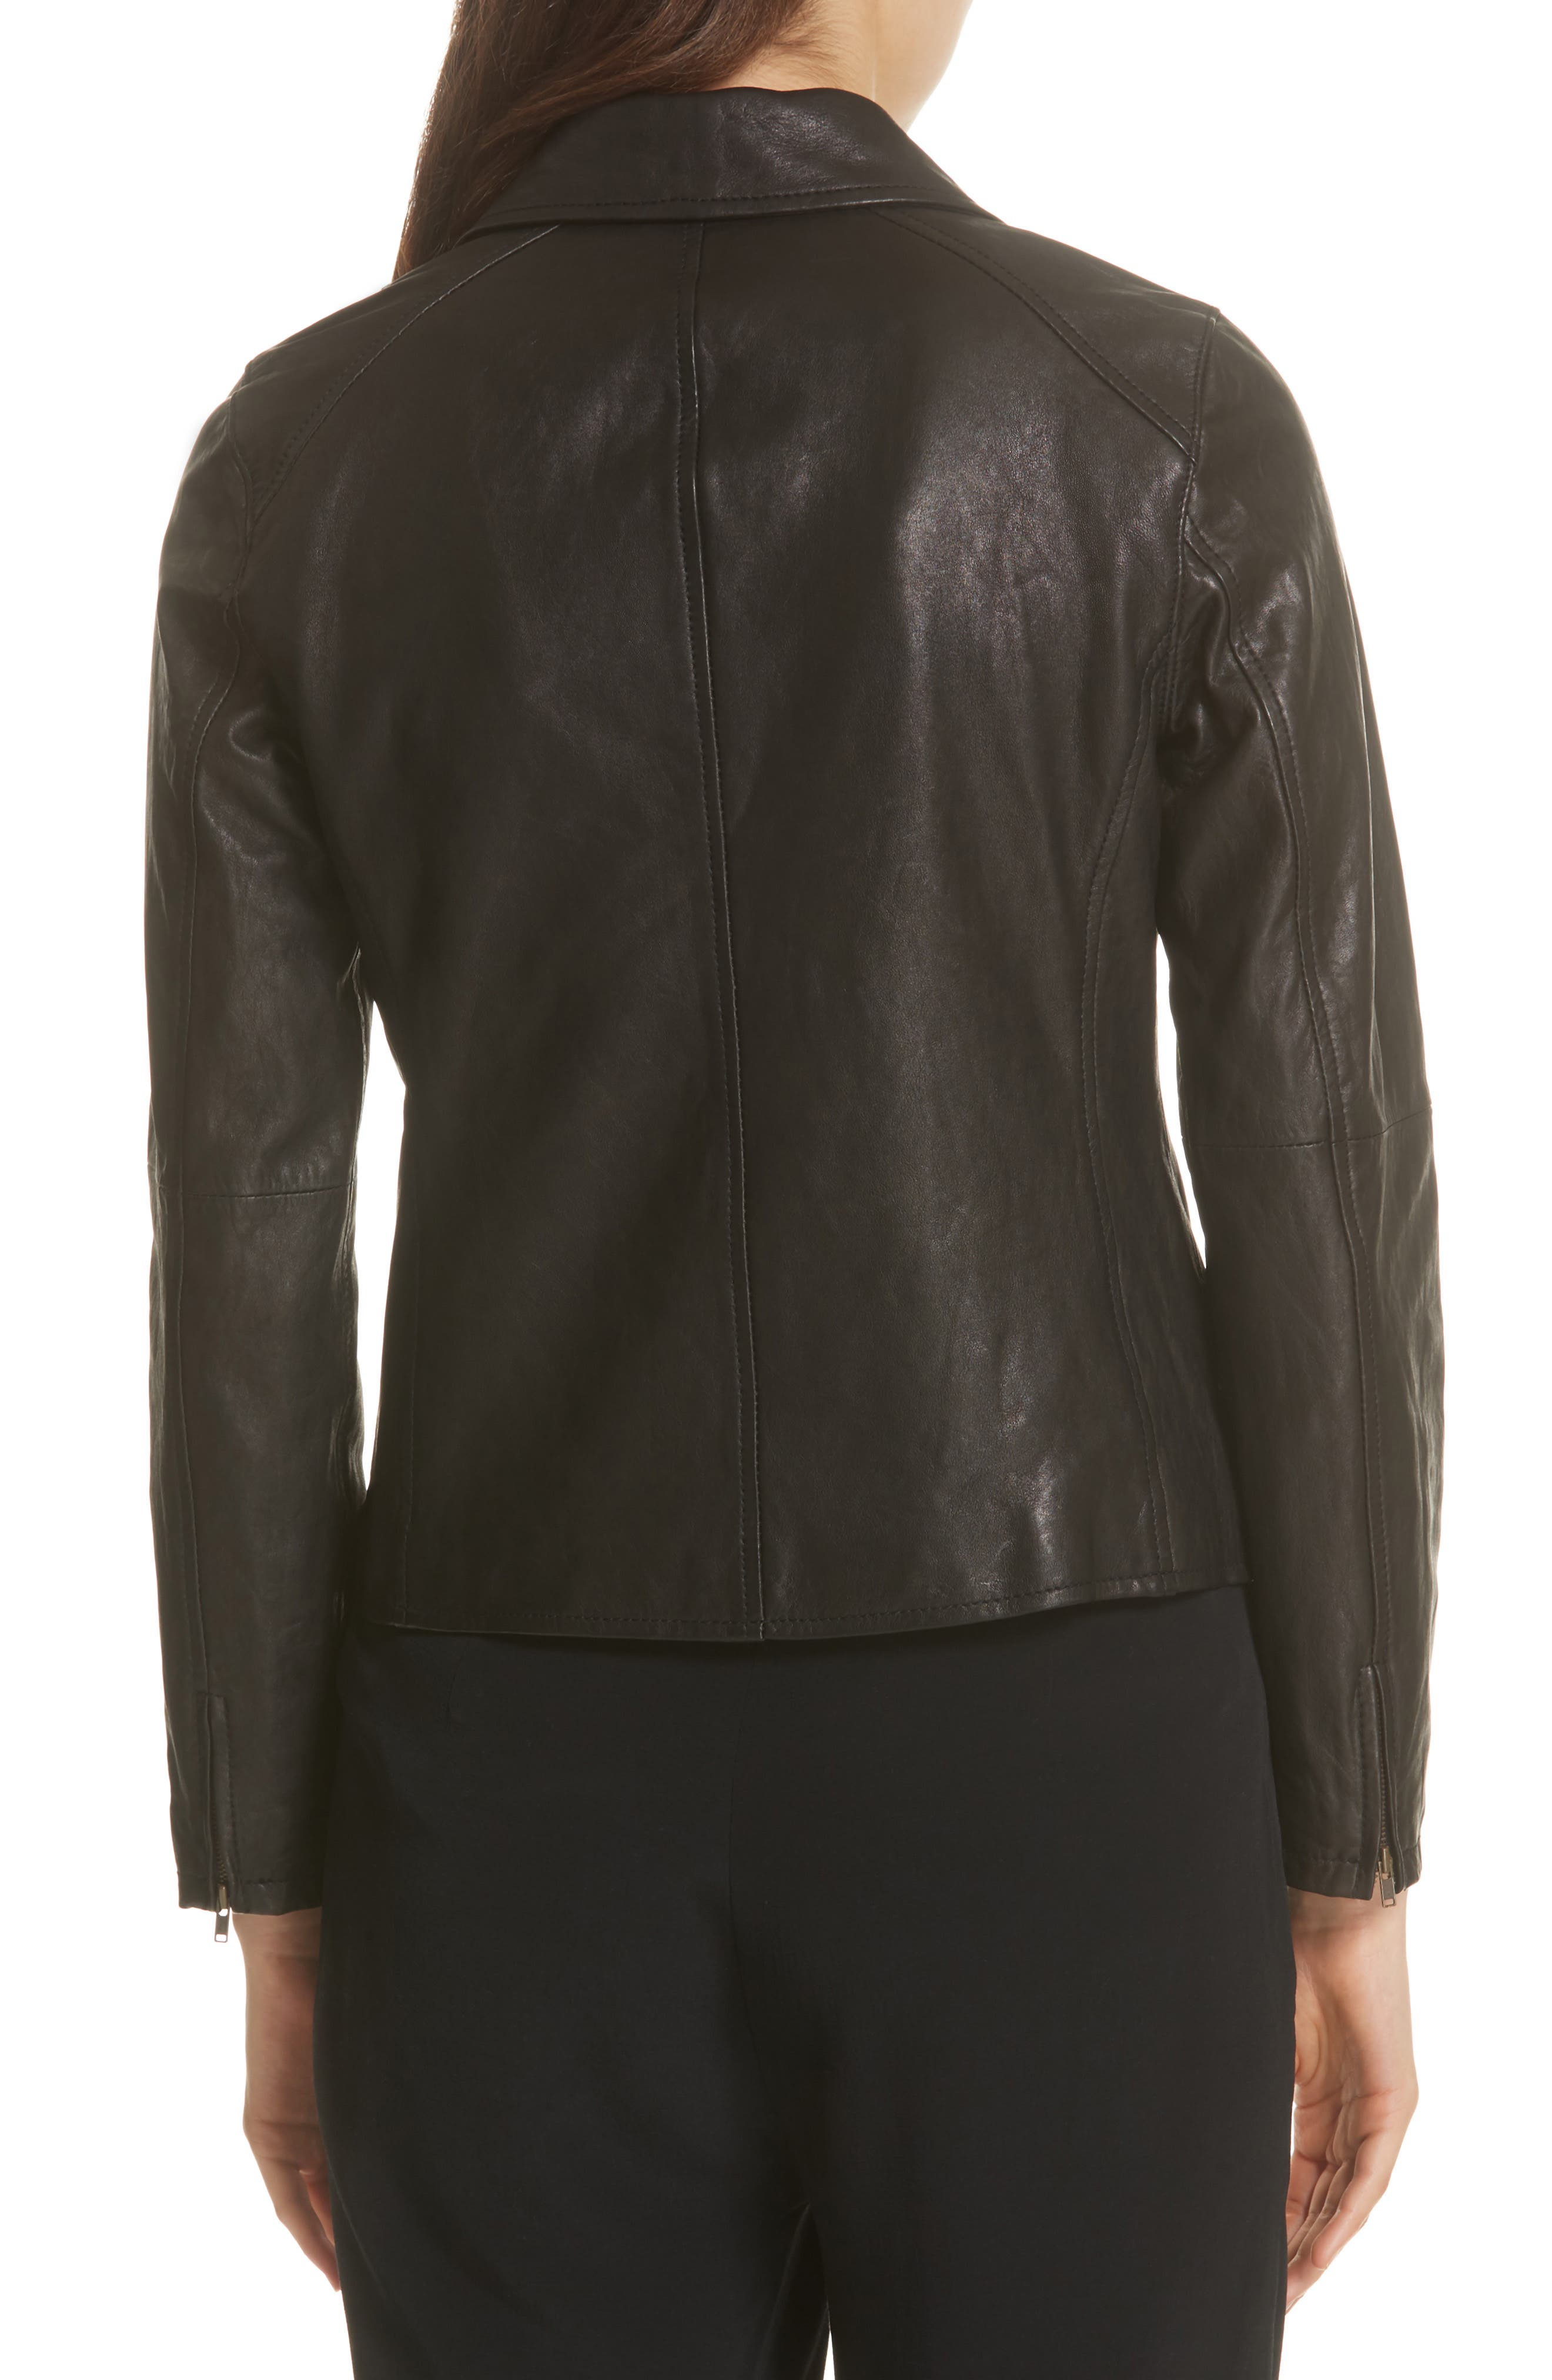 EILEEN FISHER,                             Leather Moto Jacket,                             Alternate thumbnail 2, color,                             001